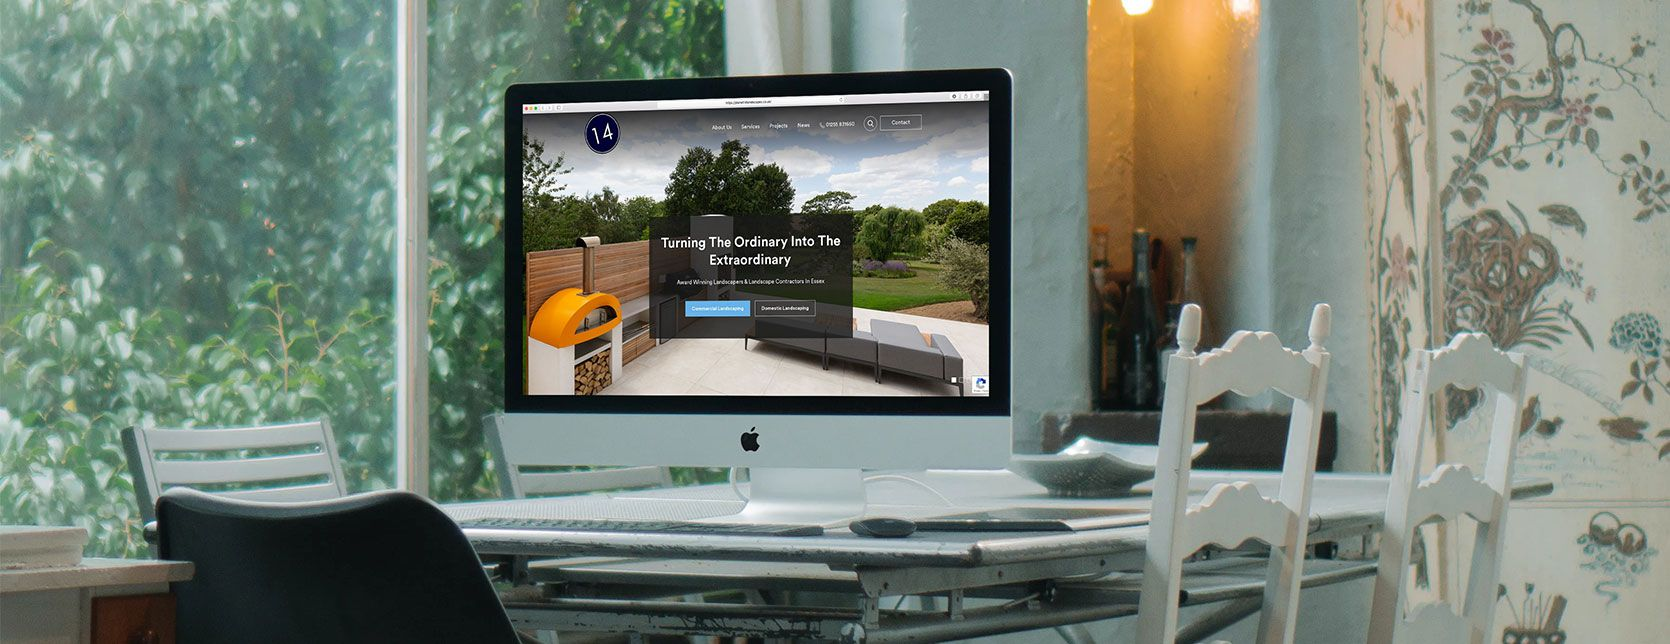 Planet 14 Landscapes - Web Design Case Study